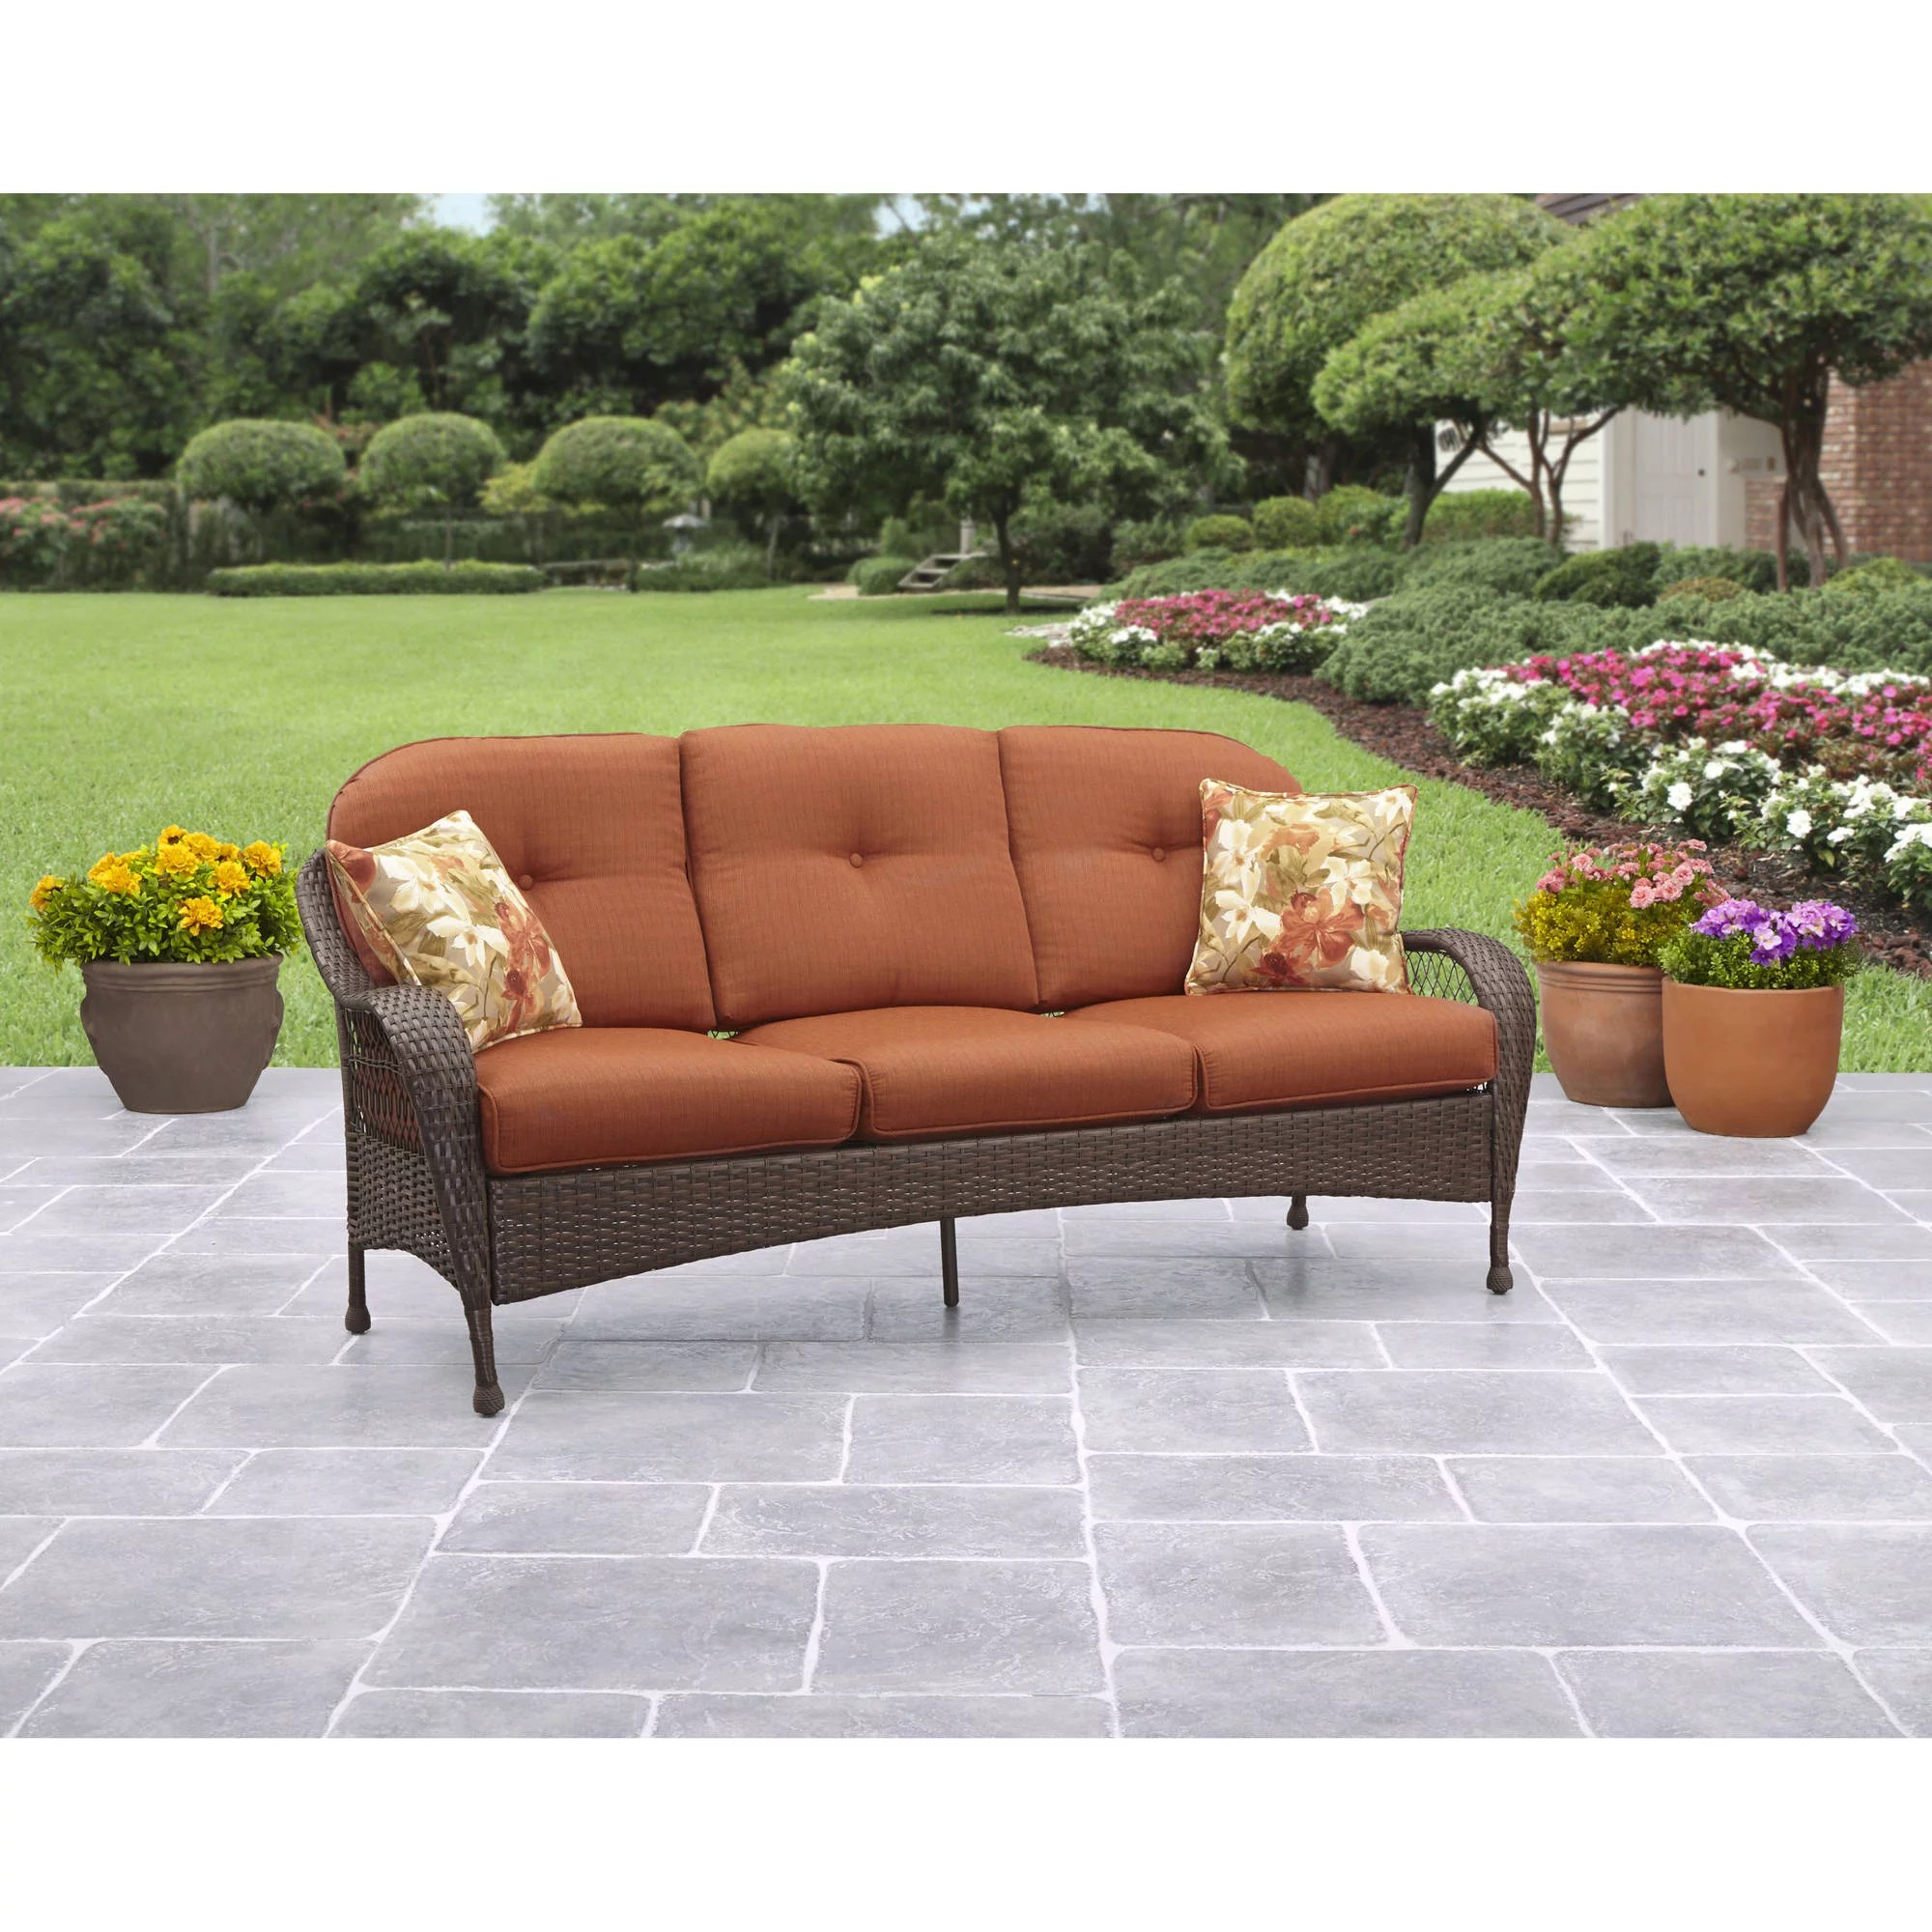 Outdoor Couch Better Homes And Gardens Azalea Ridge Outdoor Sofa Seats 3